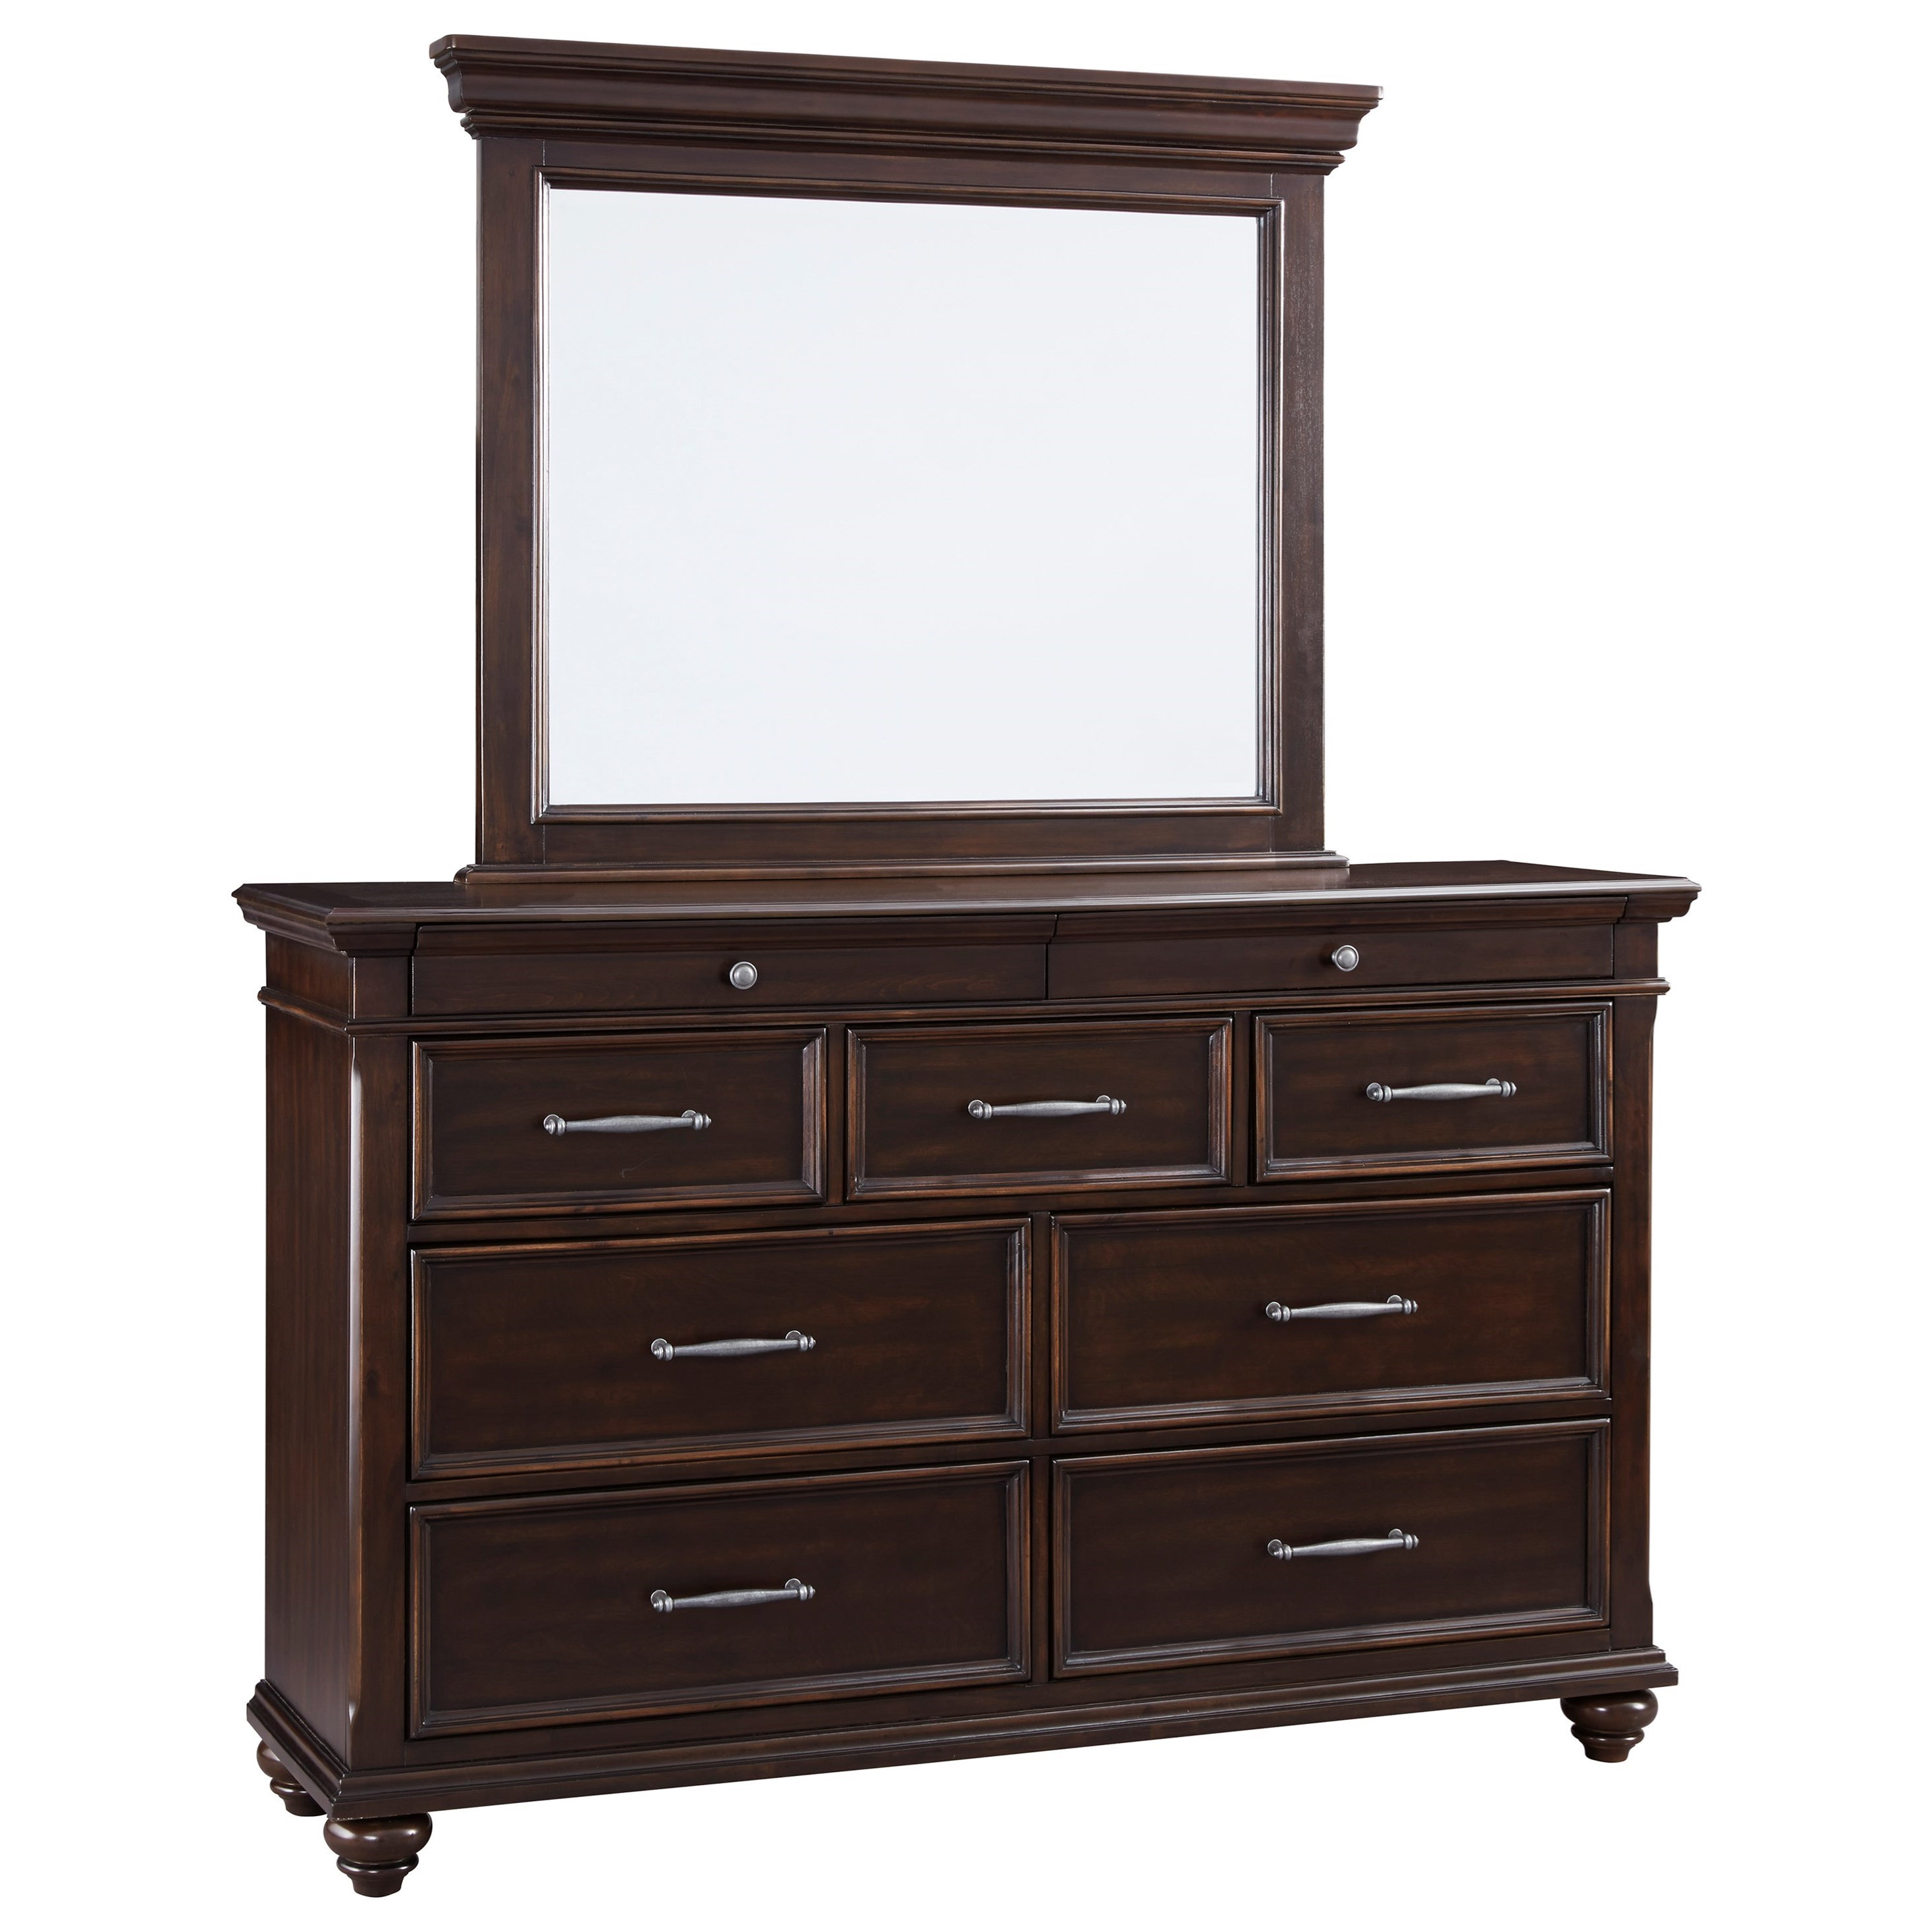 Brynhurst Dresser and Mirror Set by Ashley (Signature Design) at Johnny Janosik